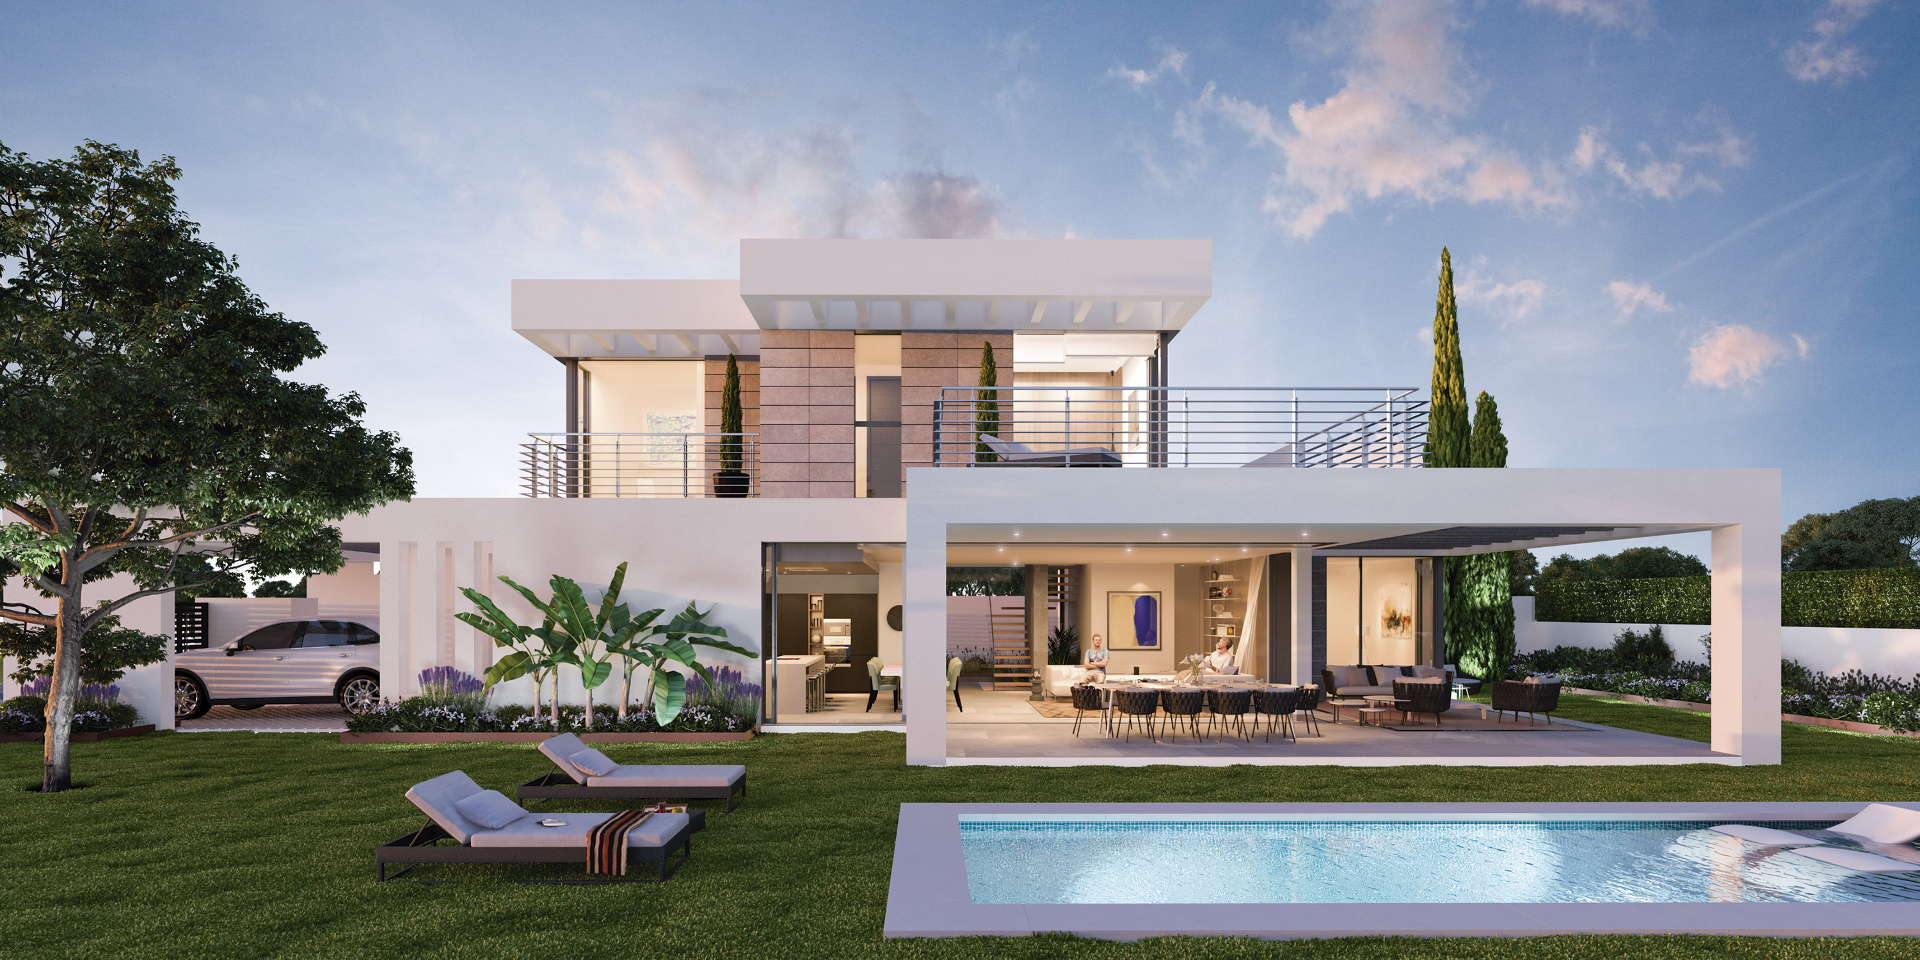 Syzygy new modern villa with sea views near marbella for for New luxury home plans